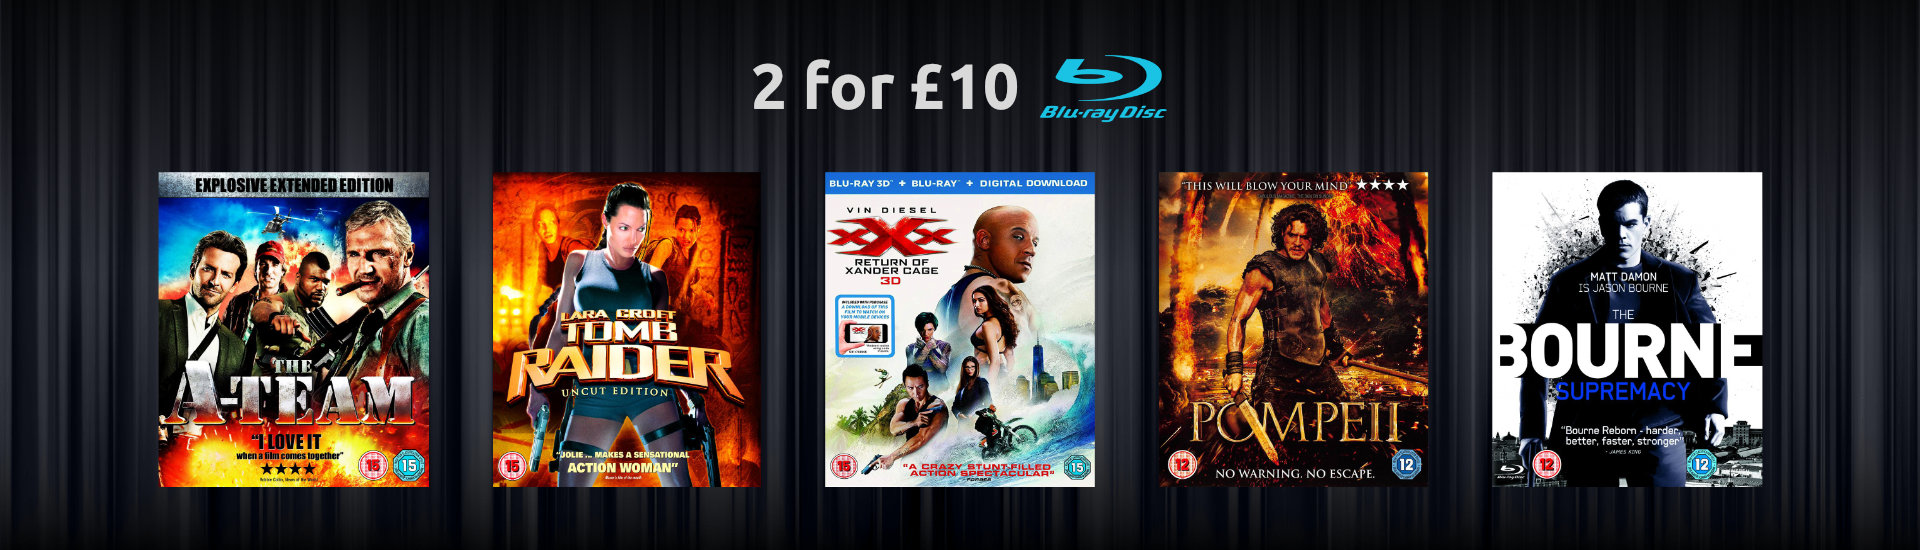 2 for £10 Action